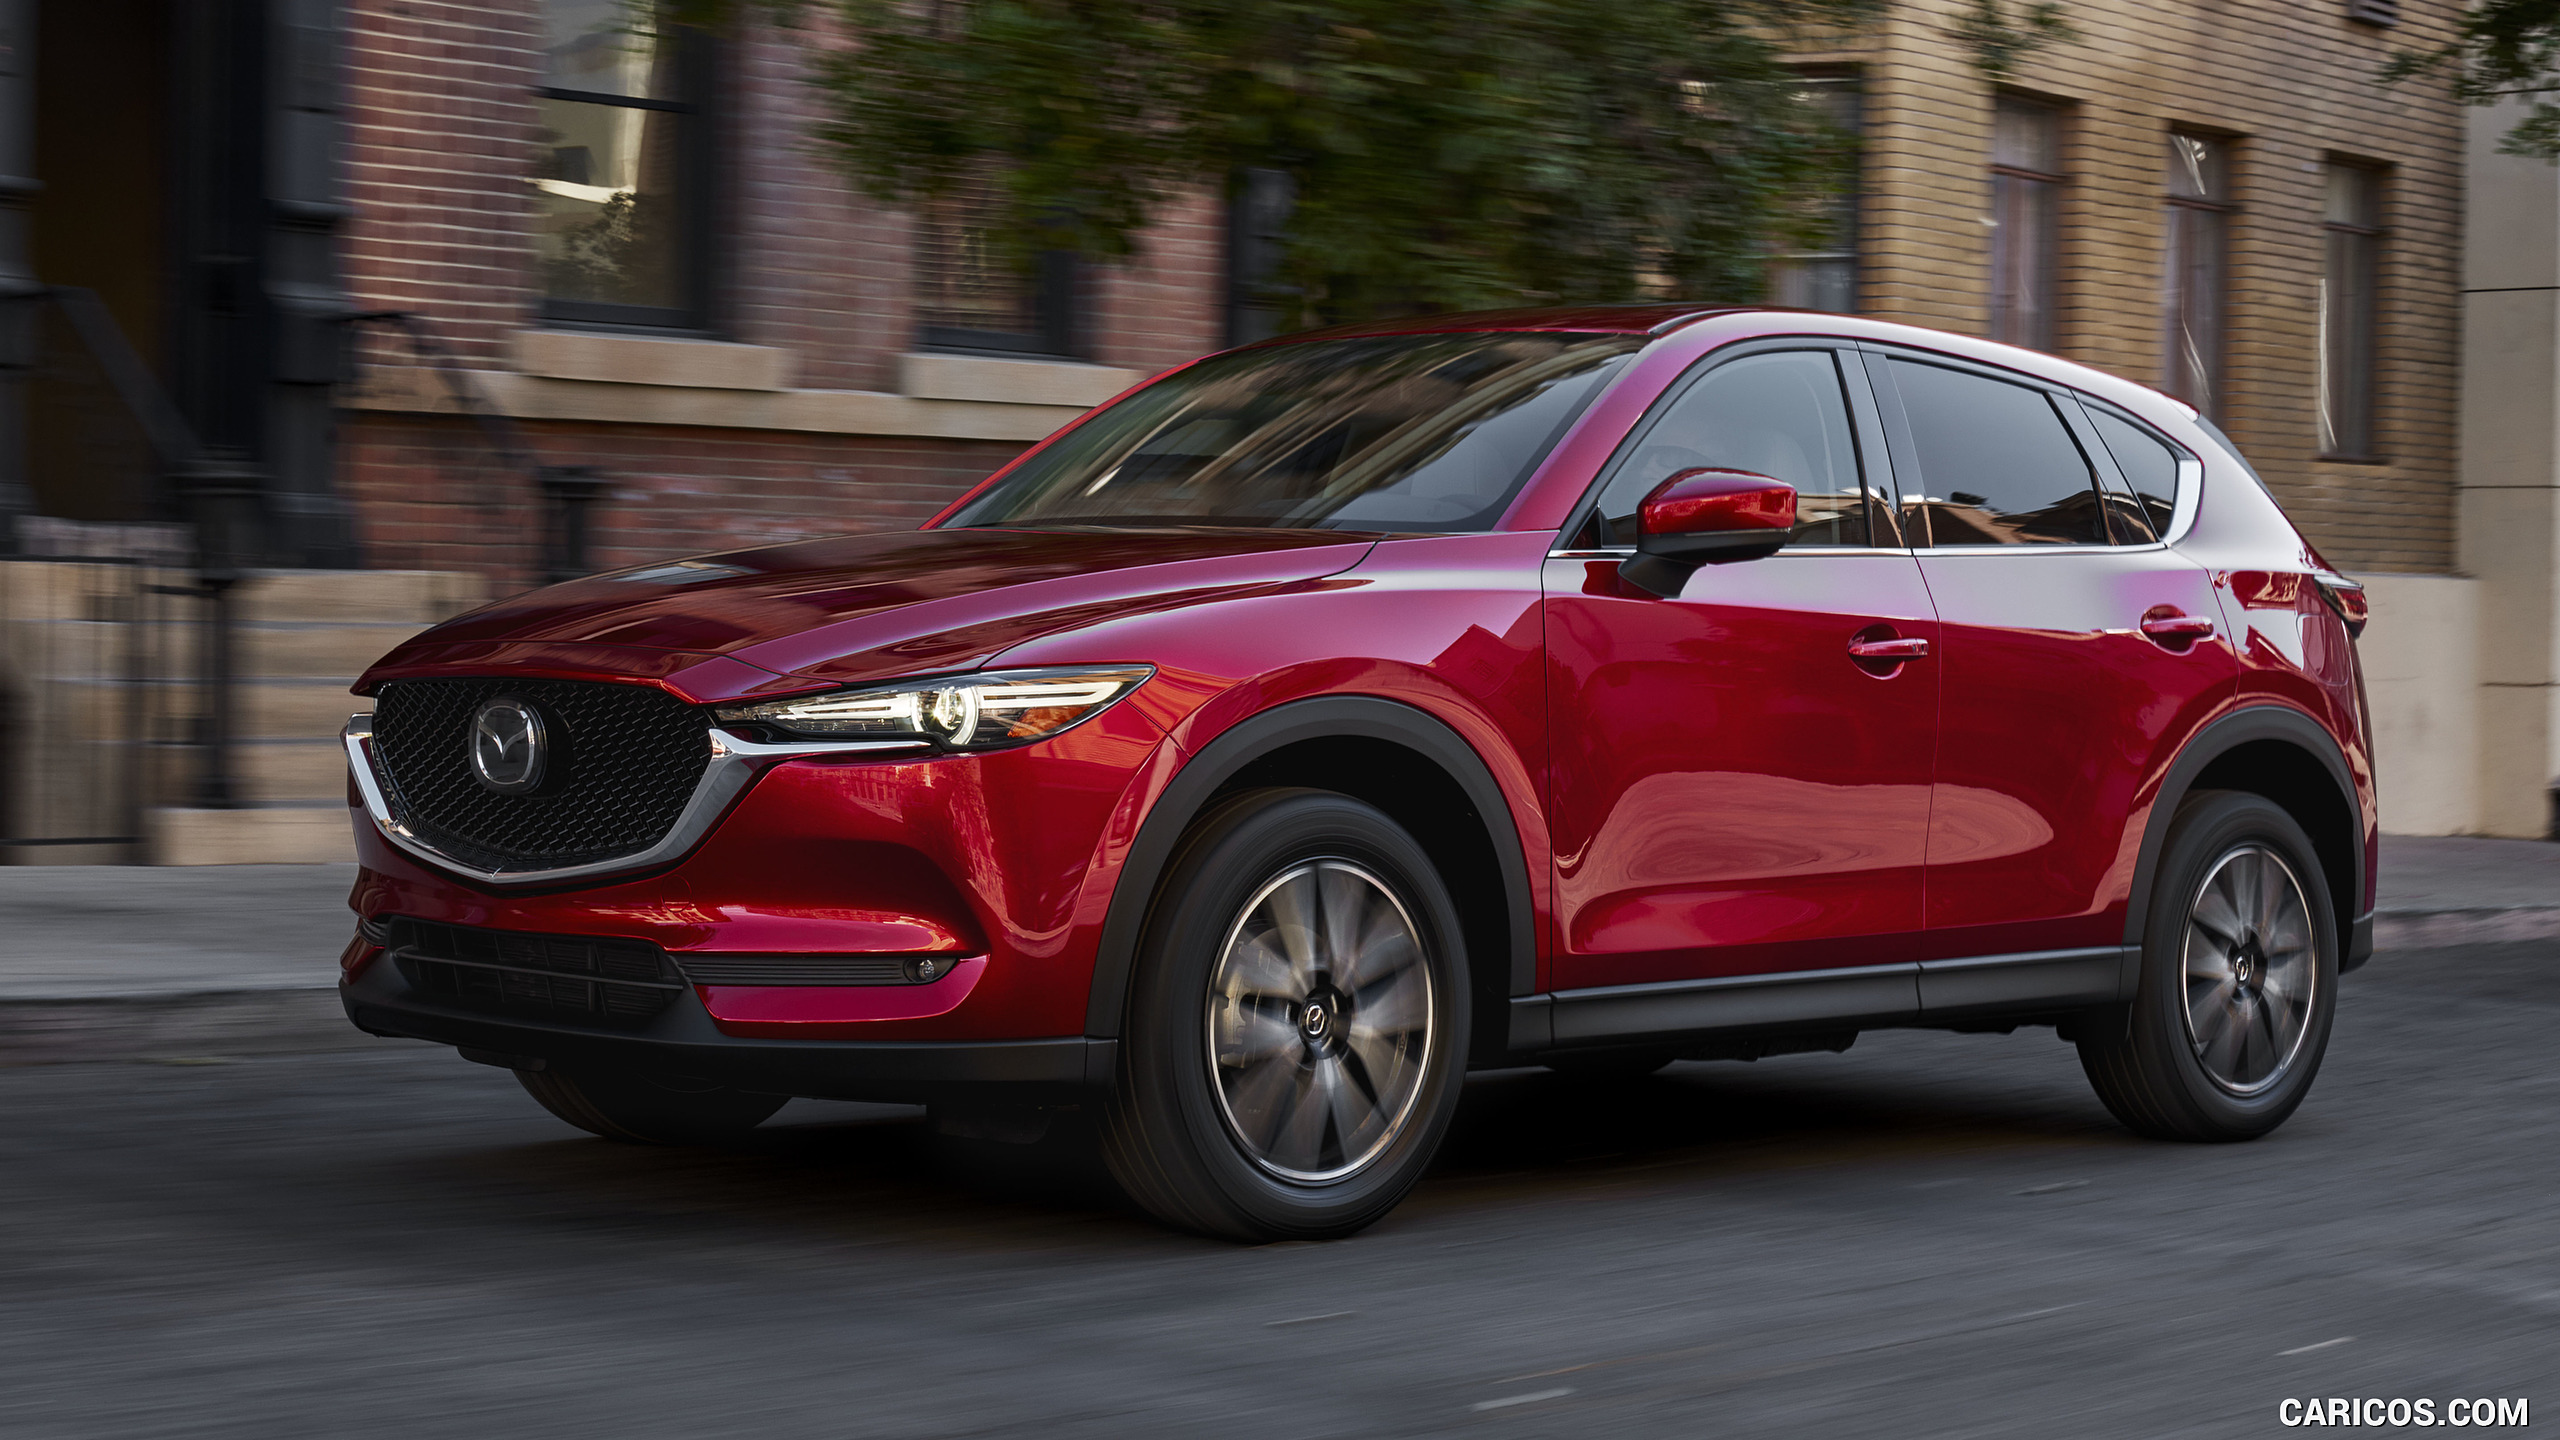 2560x1440 - Mazda CX-5 Wallpapers 33